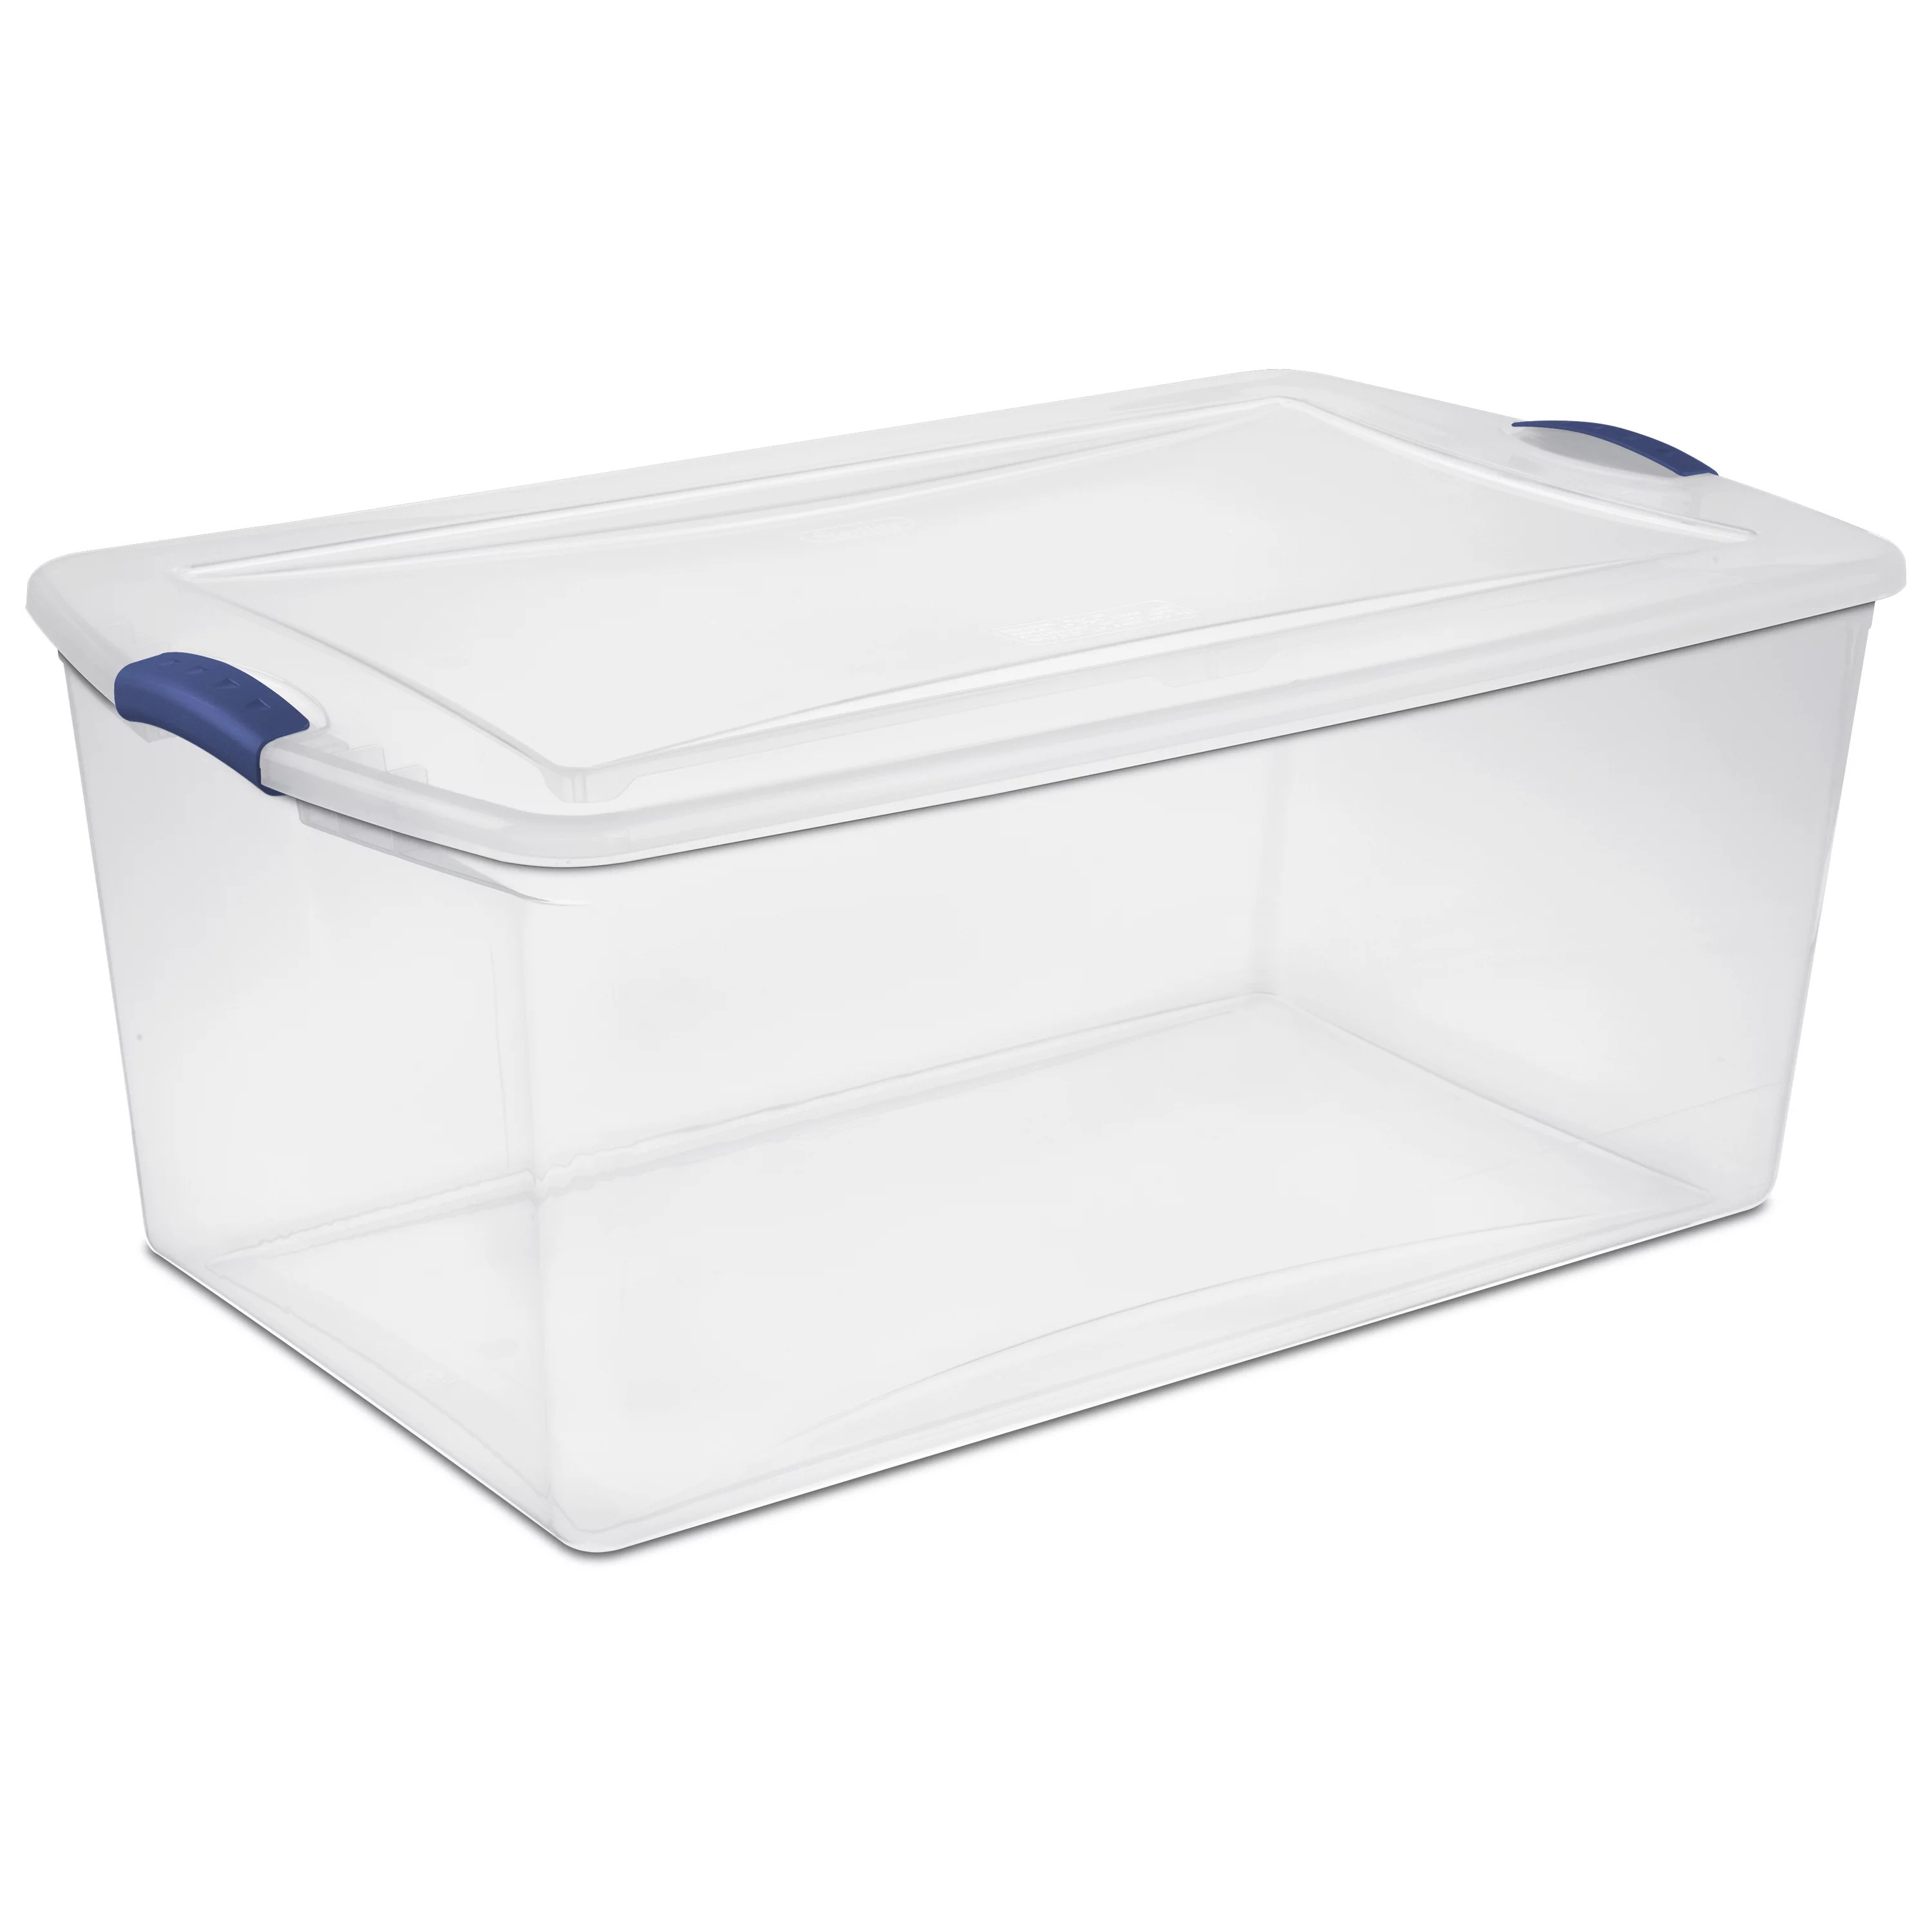 Best Kitchen Gallery: Sterilite 105 Qt 99 L Latch Box Stadium Blue Available In A Case of Plastic Storage Containers on rachelxblog.com